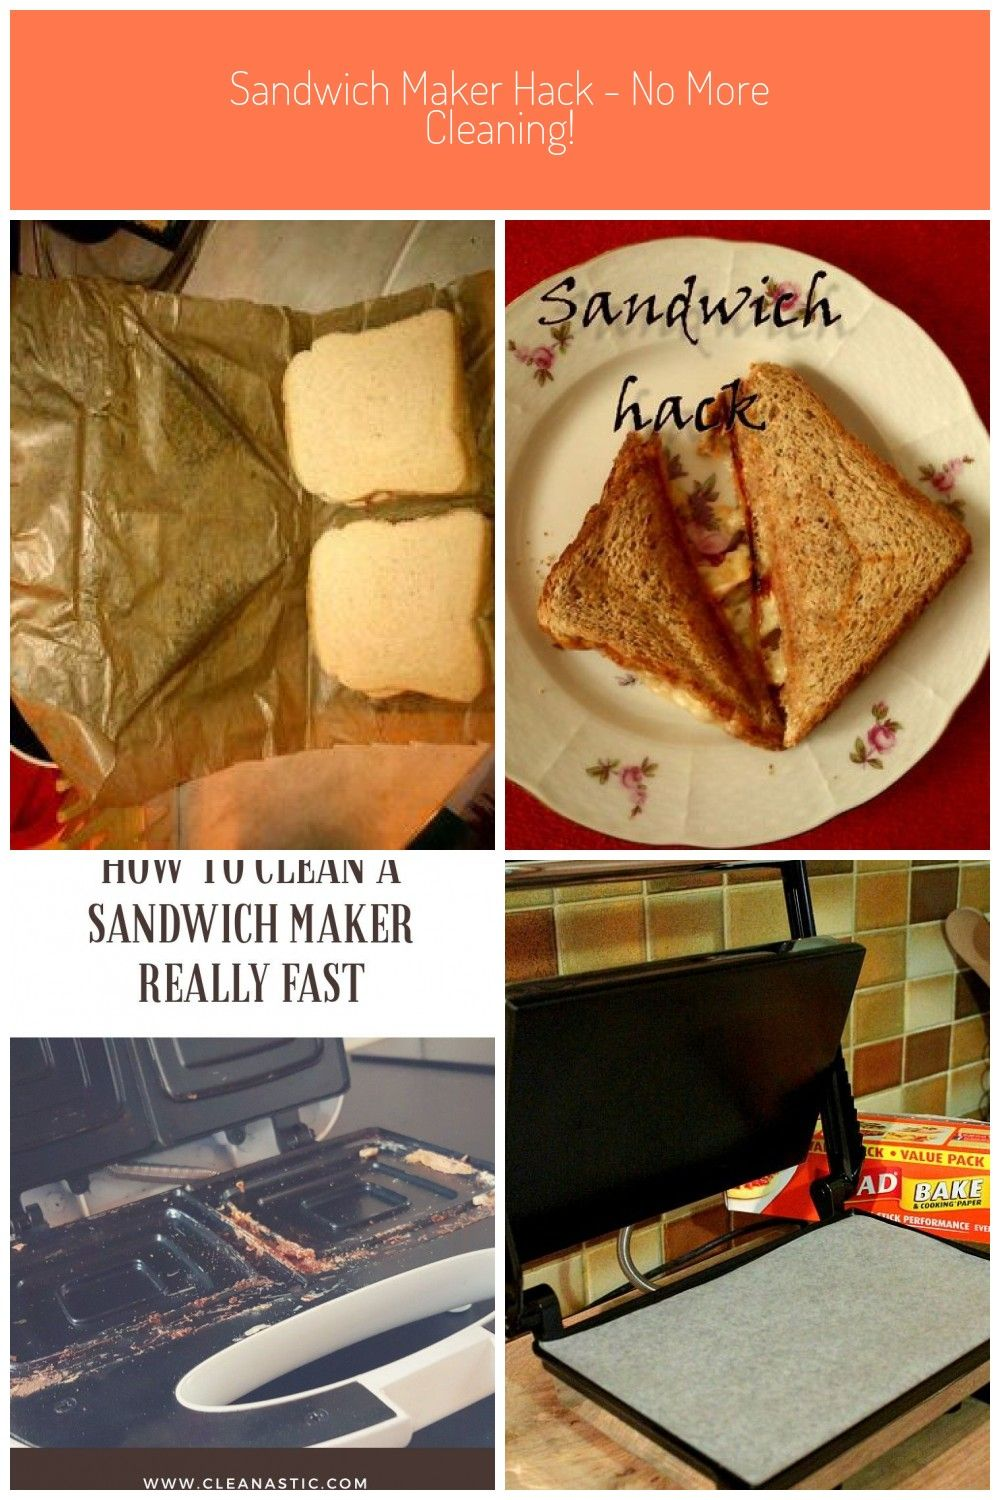 Sandwich Maker Hack No More Cleaning Roastbeef Kleines Fest Sautiertes Gemuse